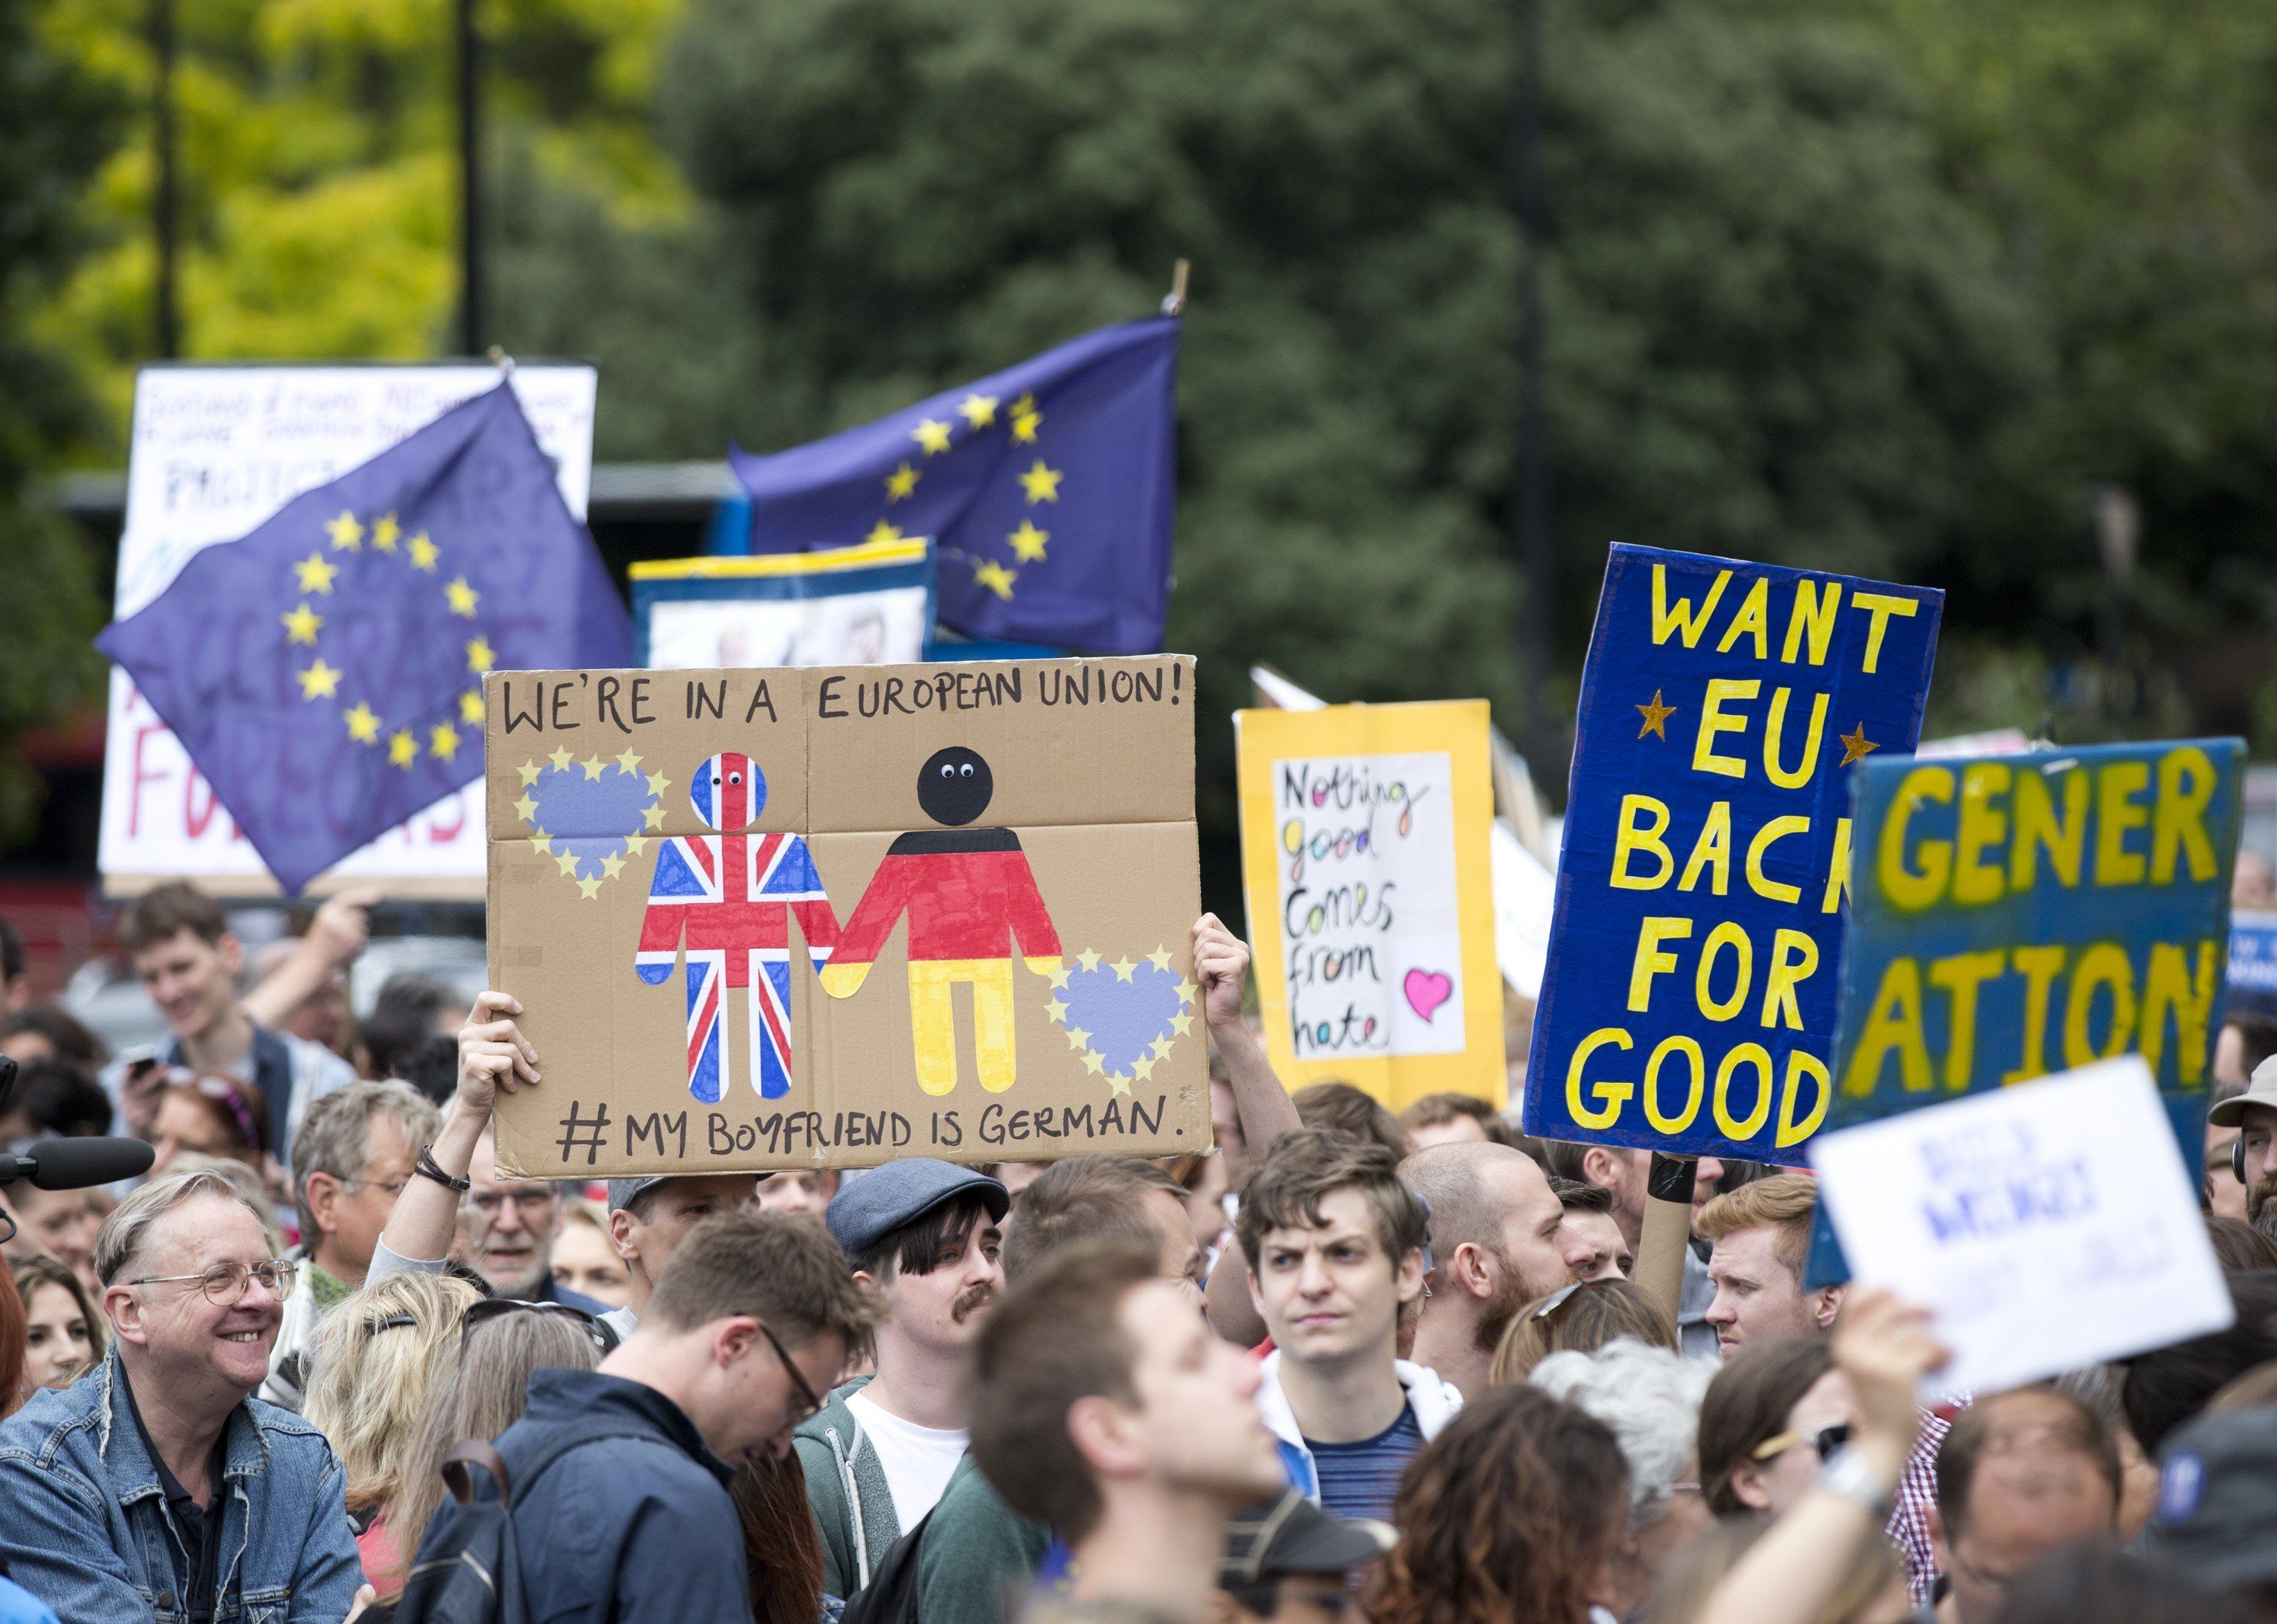 Anti-Brexitprotesterswon't like the results of this new